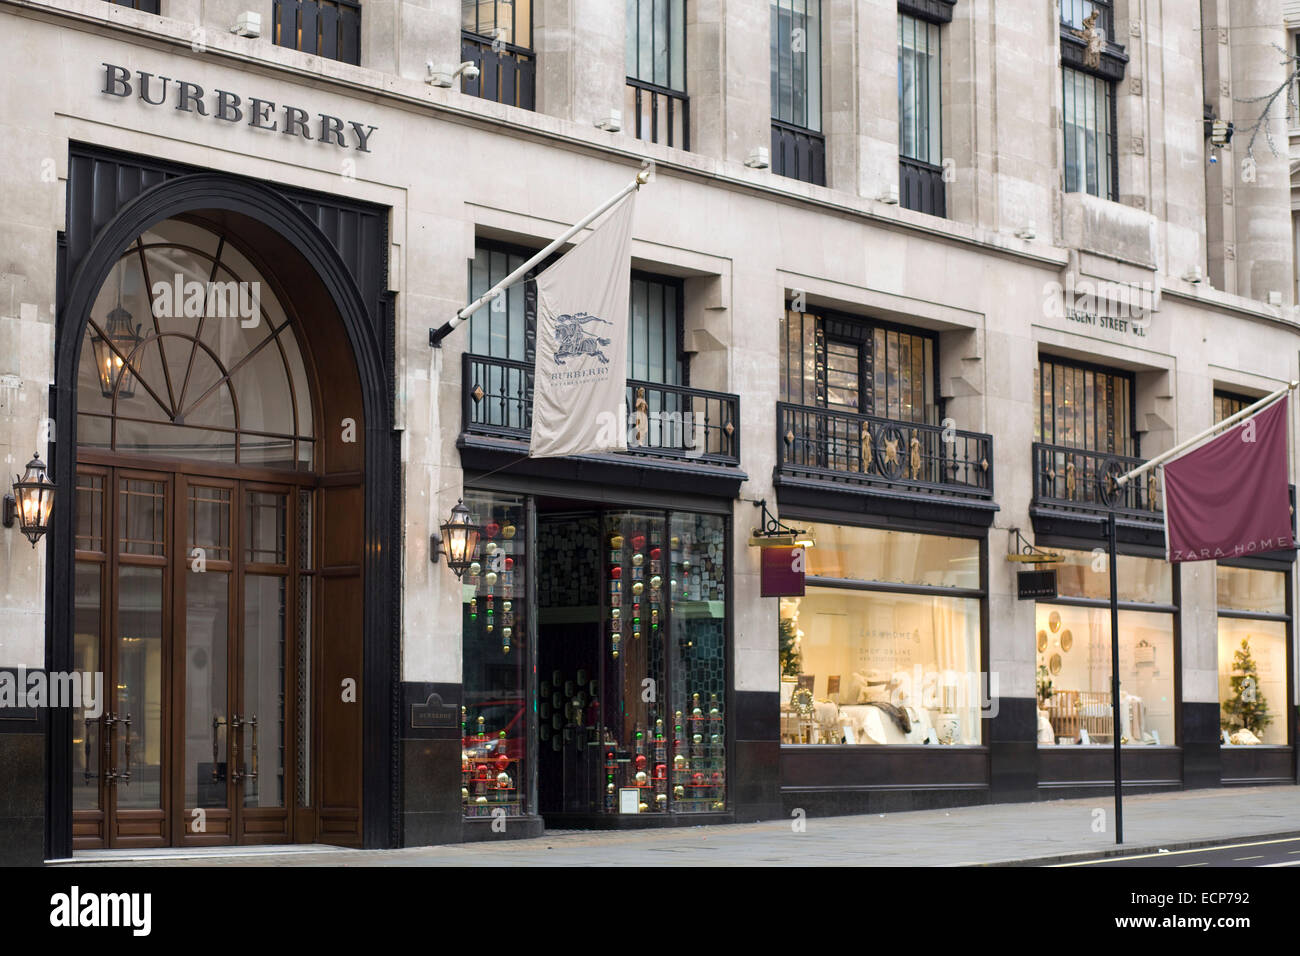 770acc1ccf42 Burberry Flagship Store Stock Photos   Burberry Flagship Store Stock ...